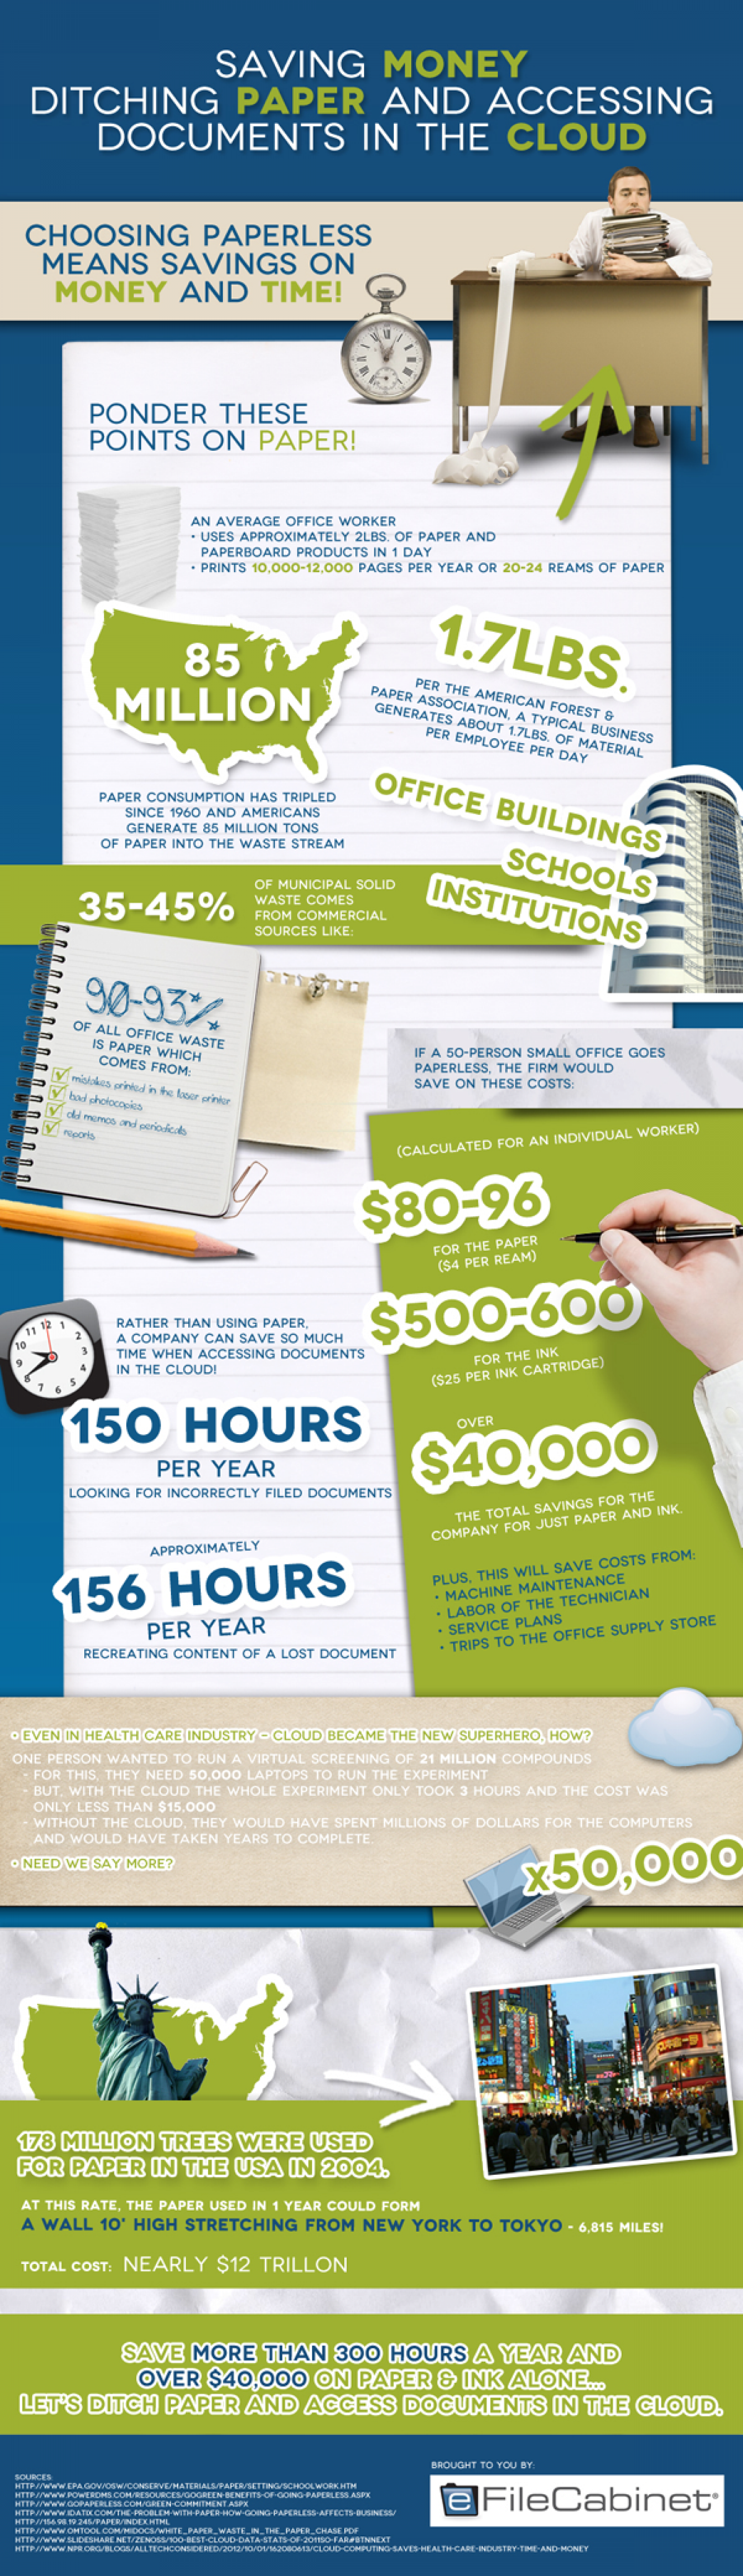 Save Time and Money Accessing Documents in the Cloud Infographic